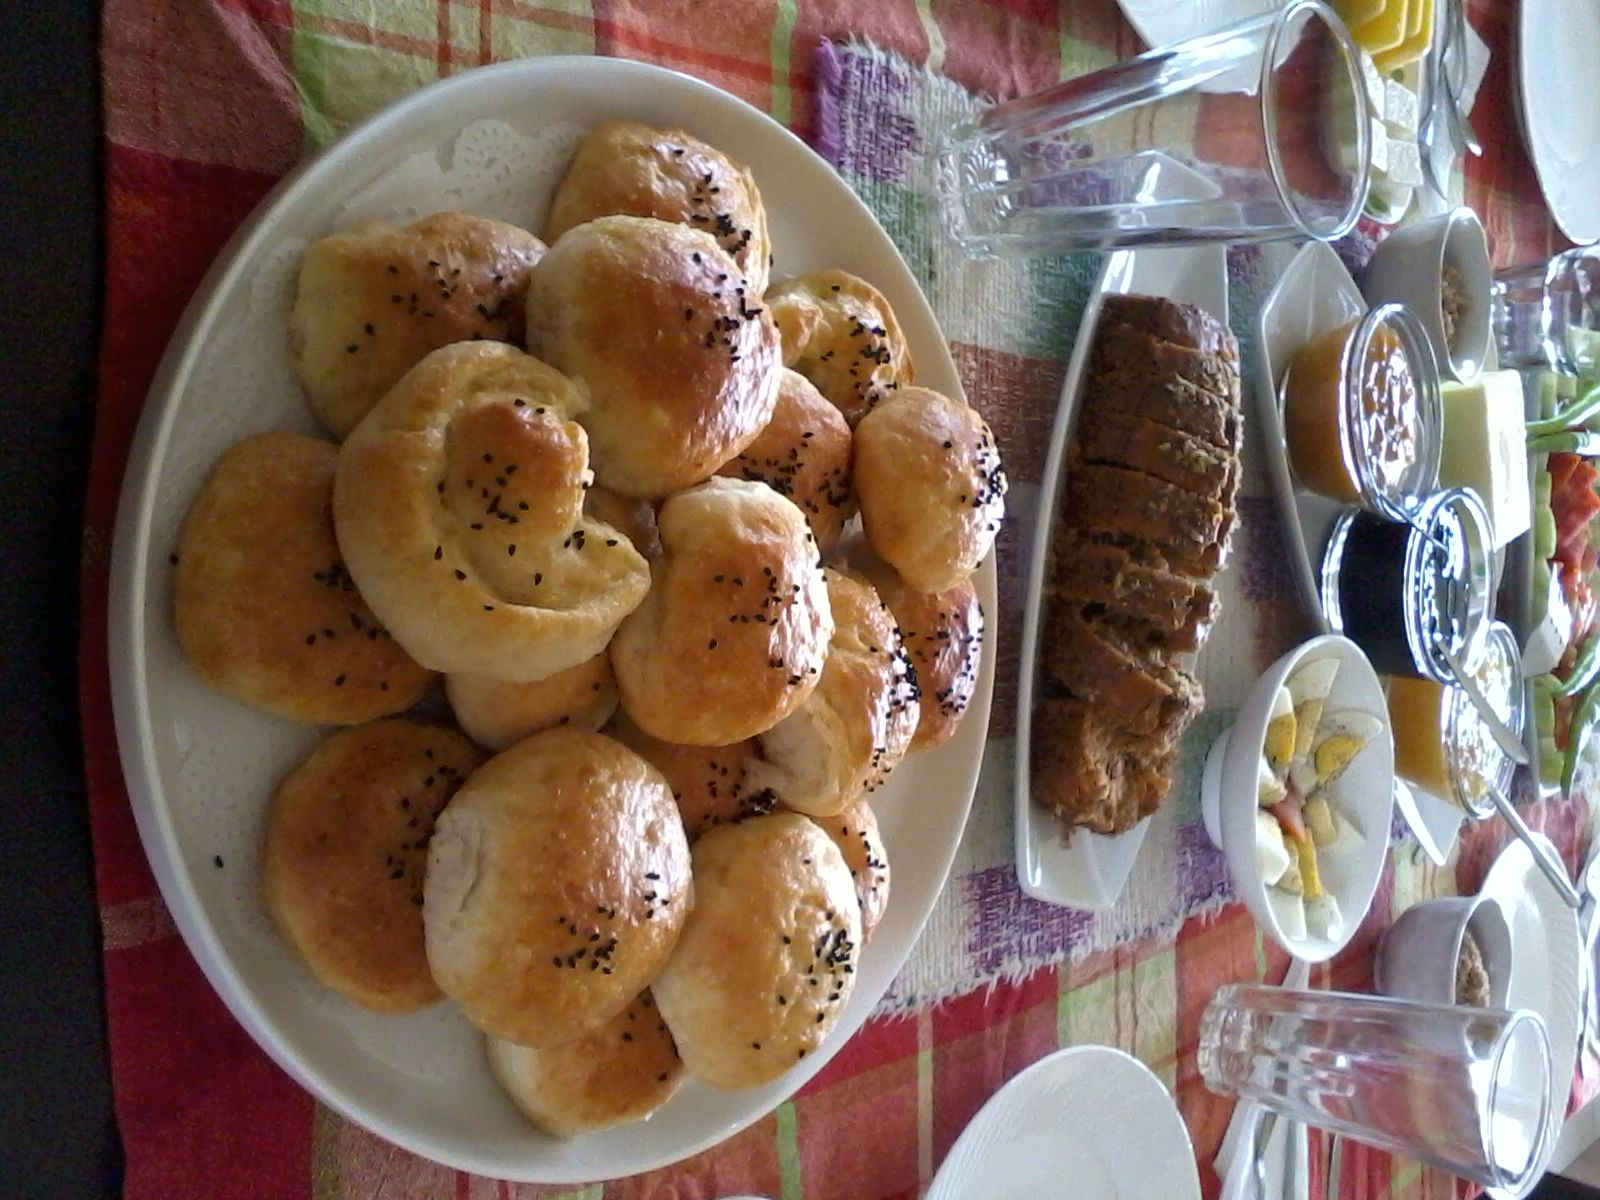 Skydelights' Breakfast Buns provide that needed energy rush what with potatoes mashed with the dough.